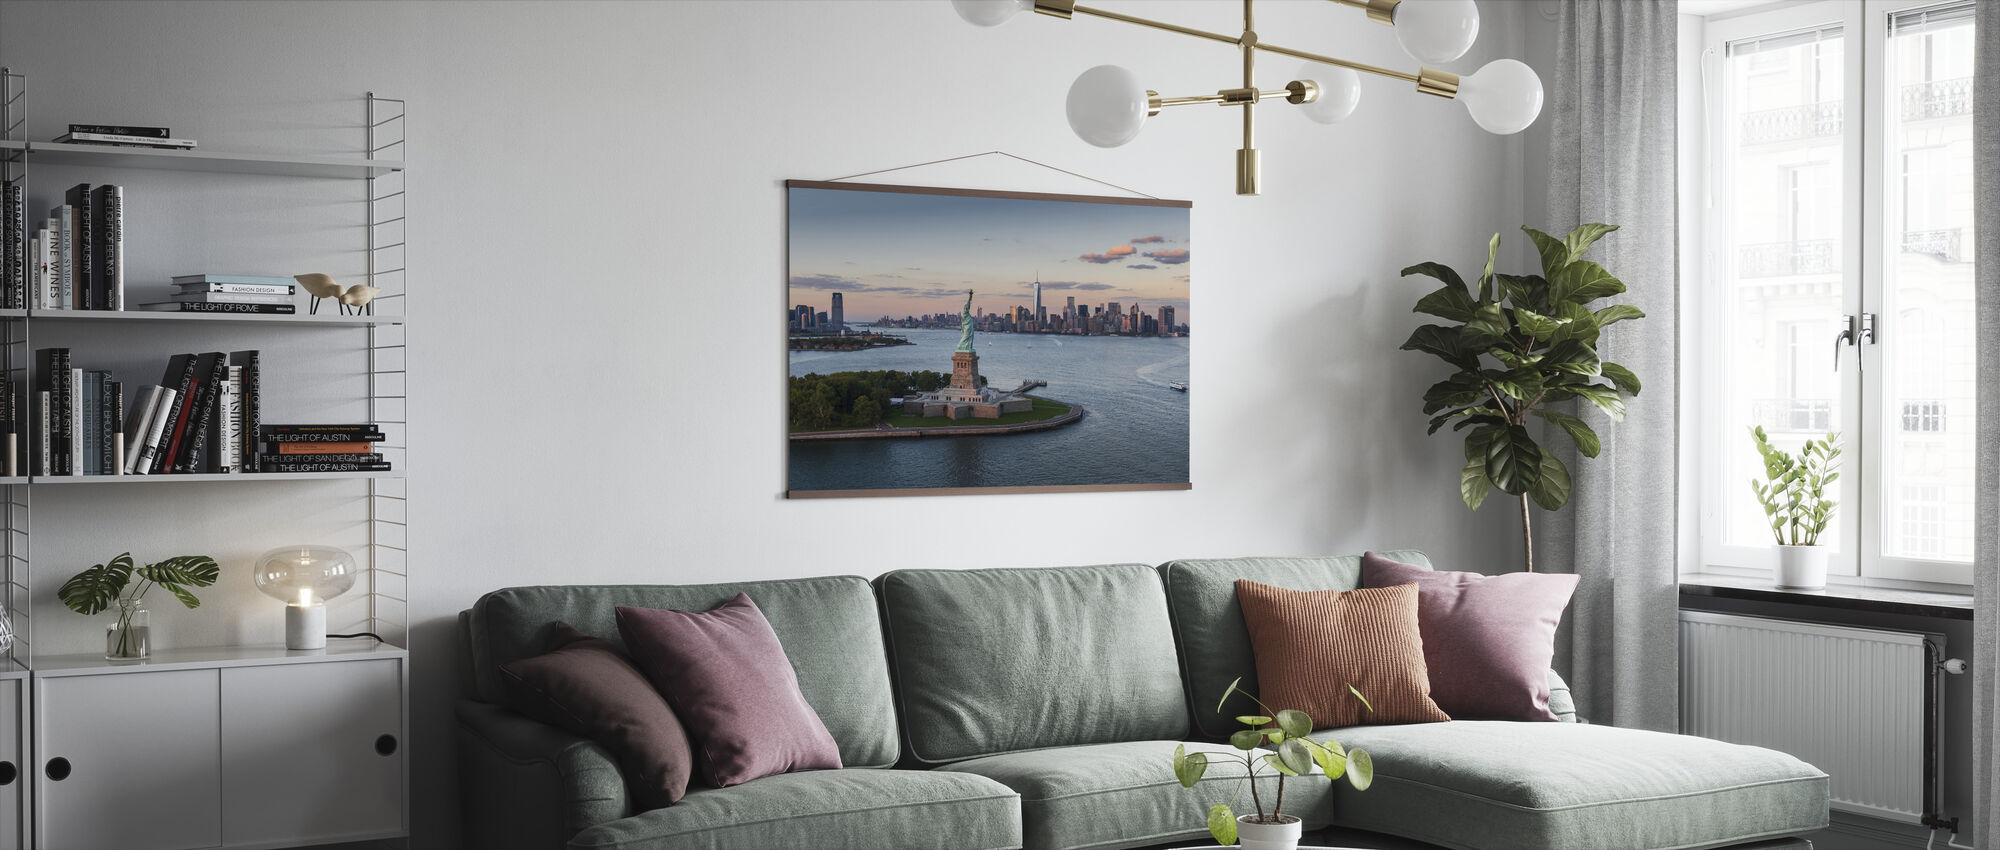 Aerial View of Statue of Liberty - Poster - Living Room